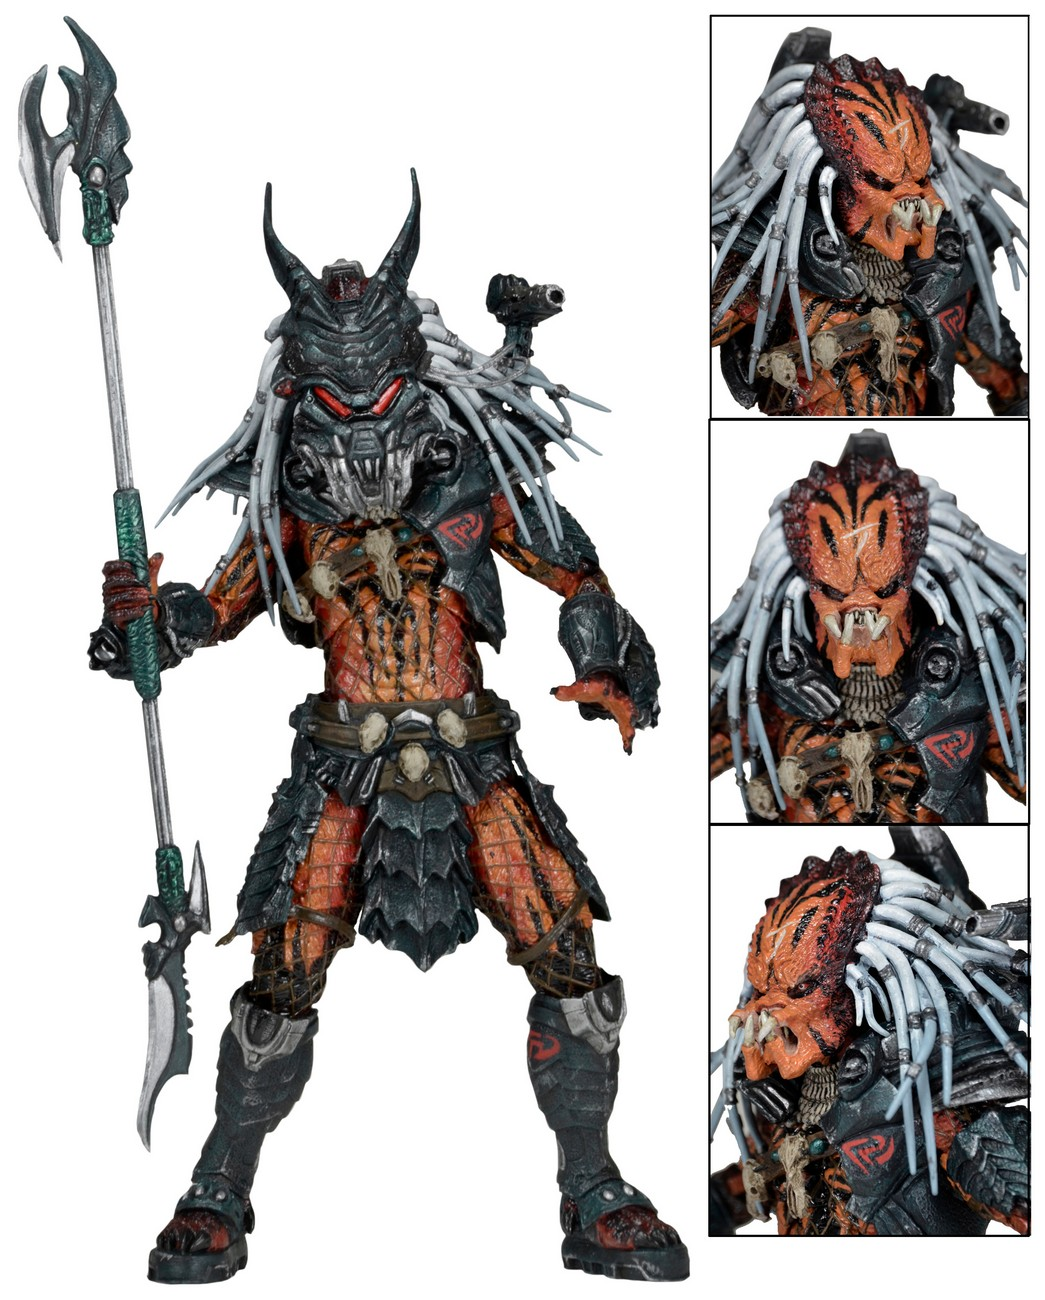 NECA Toys Official Images & Details Of Predator Series 16